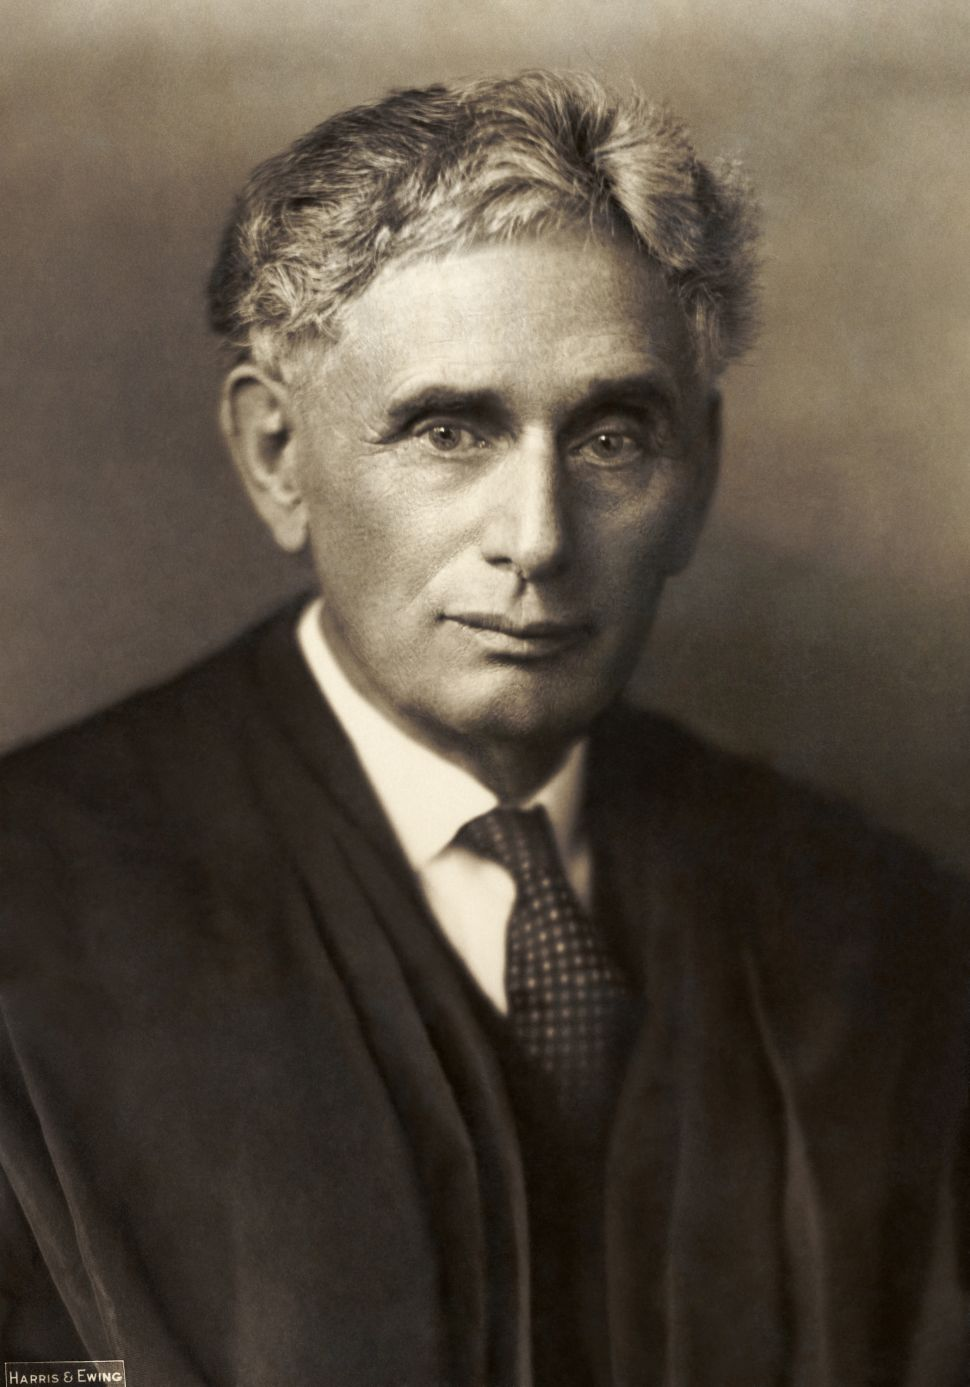 The Lasting Legacy of Justice Louis D. Brandeis